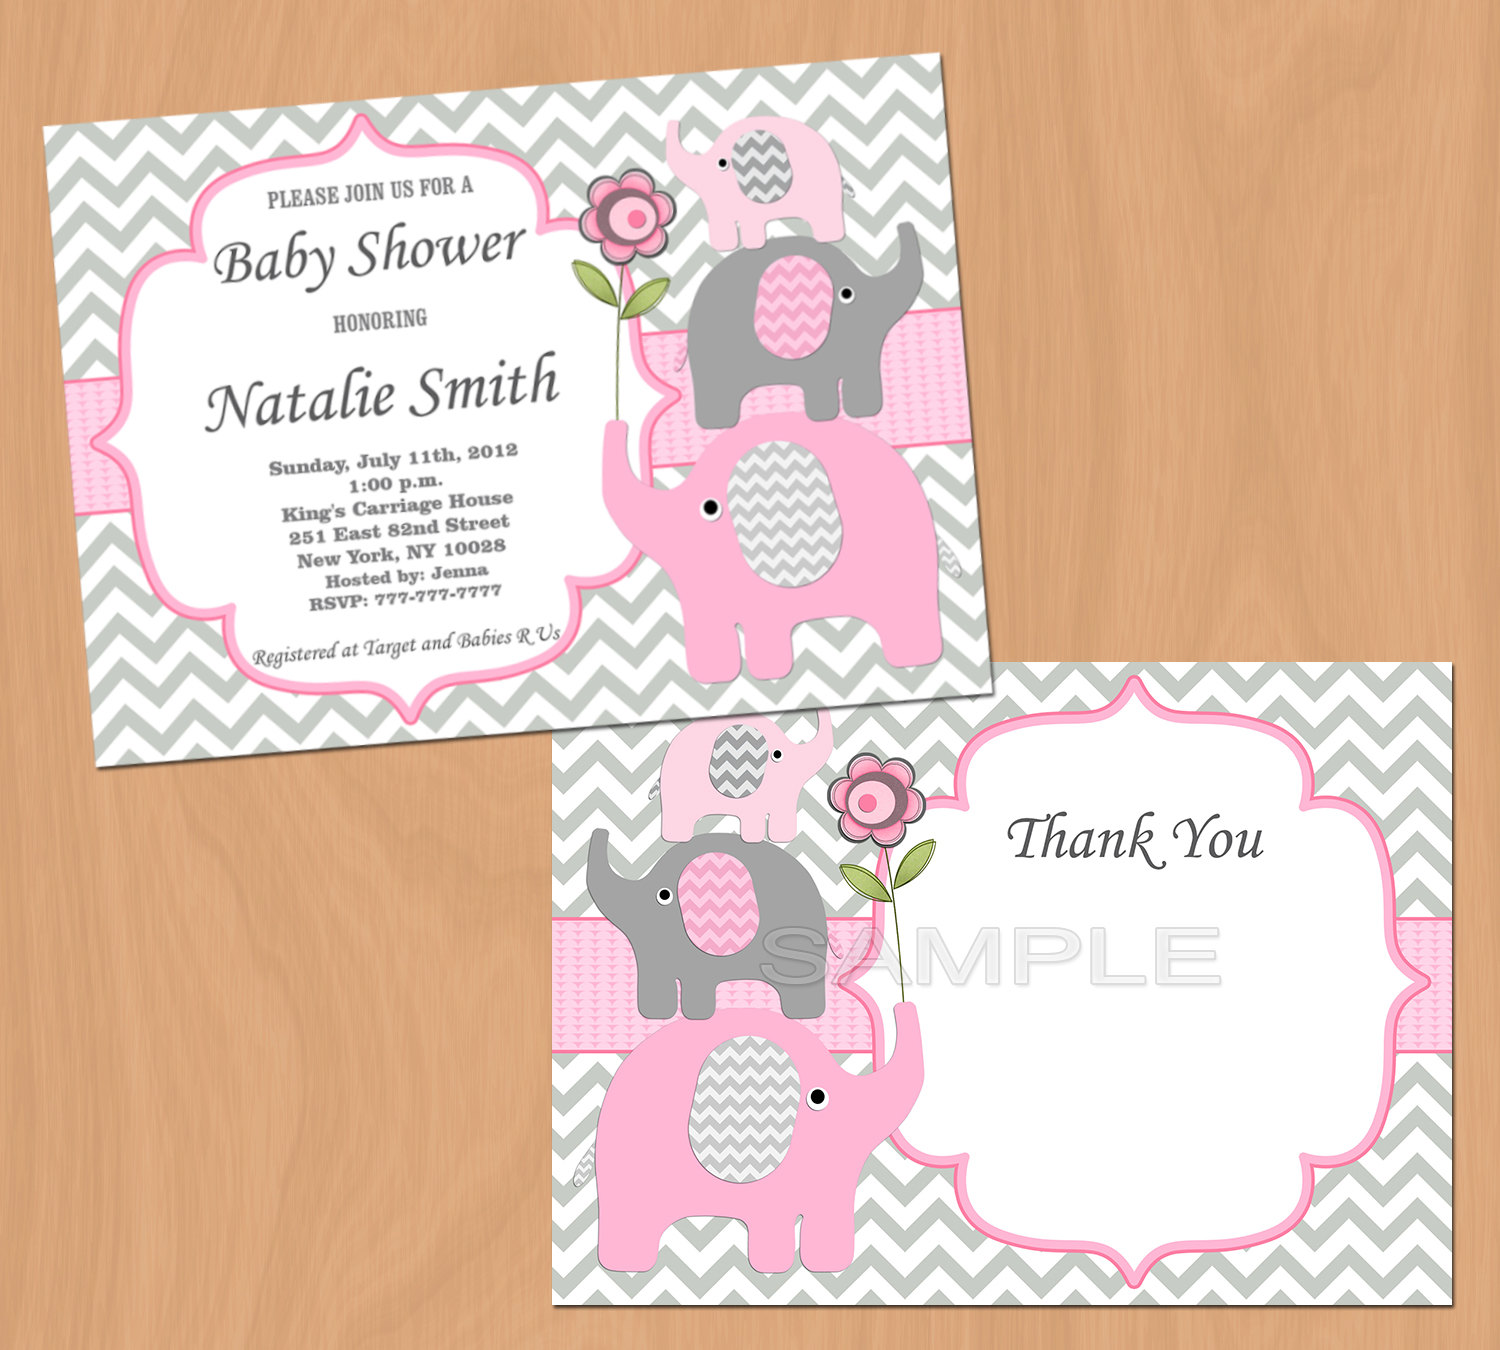 Full Size of Baby Shower:63+ Delightful Cheap Baby Shower Invitations Image Inspirations Cheap Baby Shower Invitations Baby Shower Food Ideas Baby Shower Poems Adornos Para Baby Shower Baby Shower Party Themes Baby Shower Registry Cheap Baby Shower Invitations For Reignnjcom